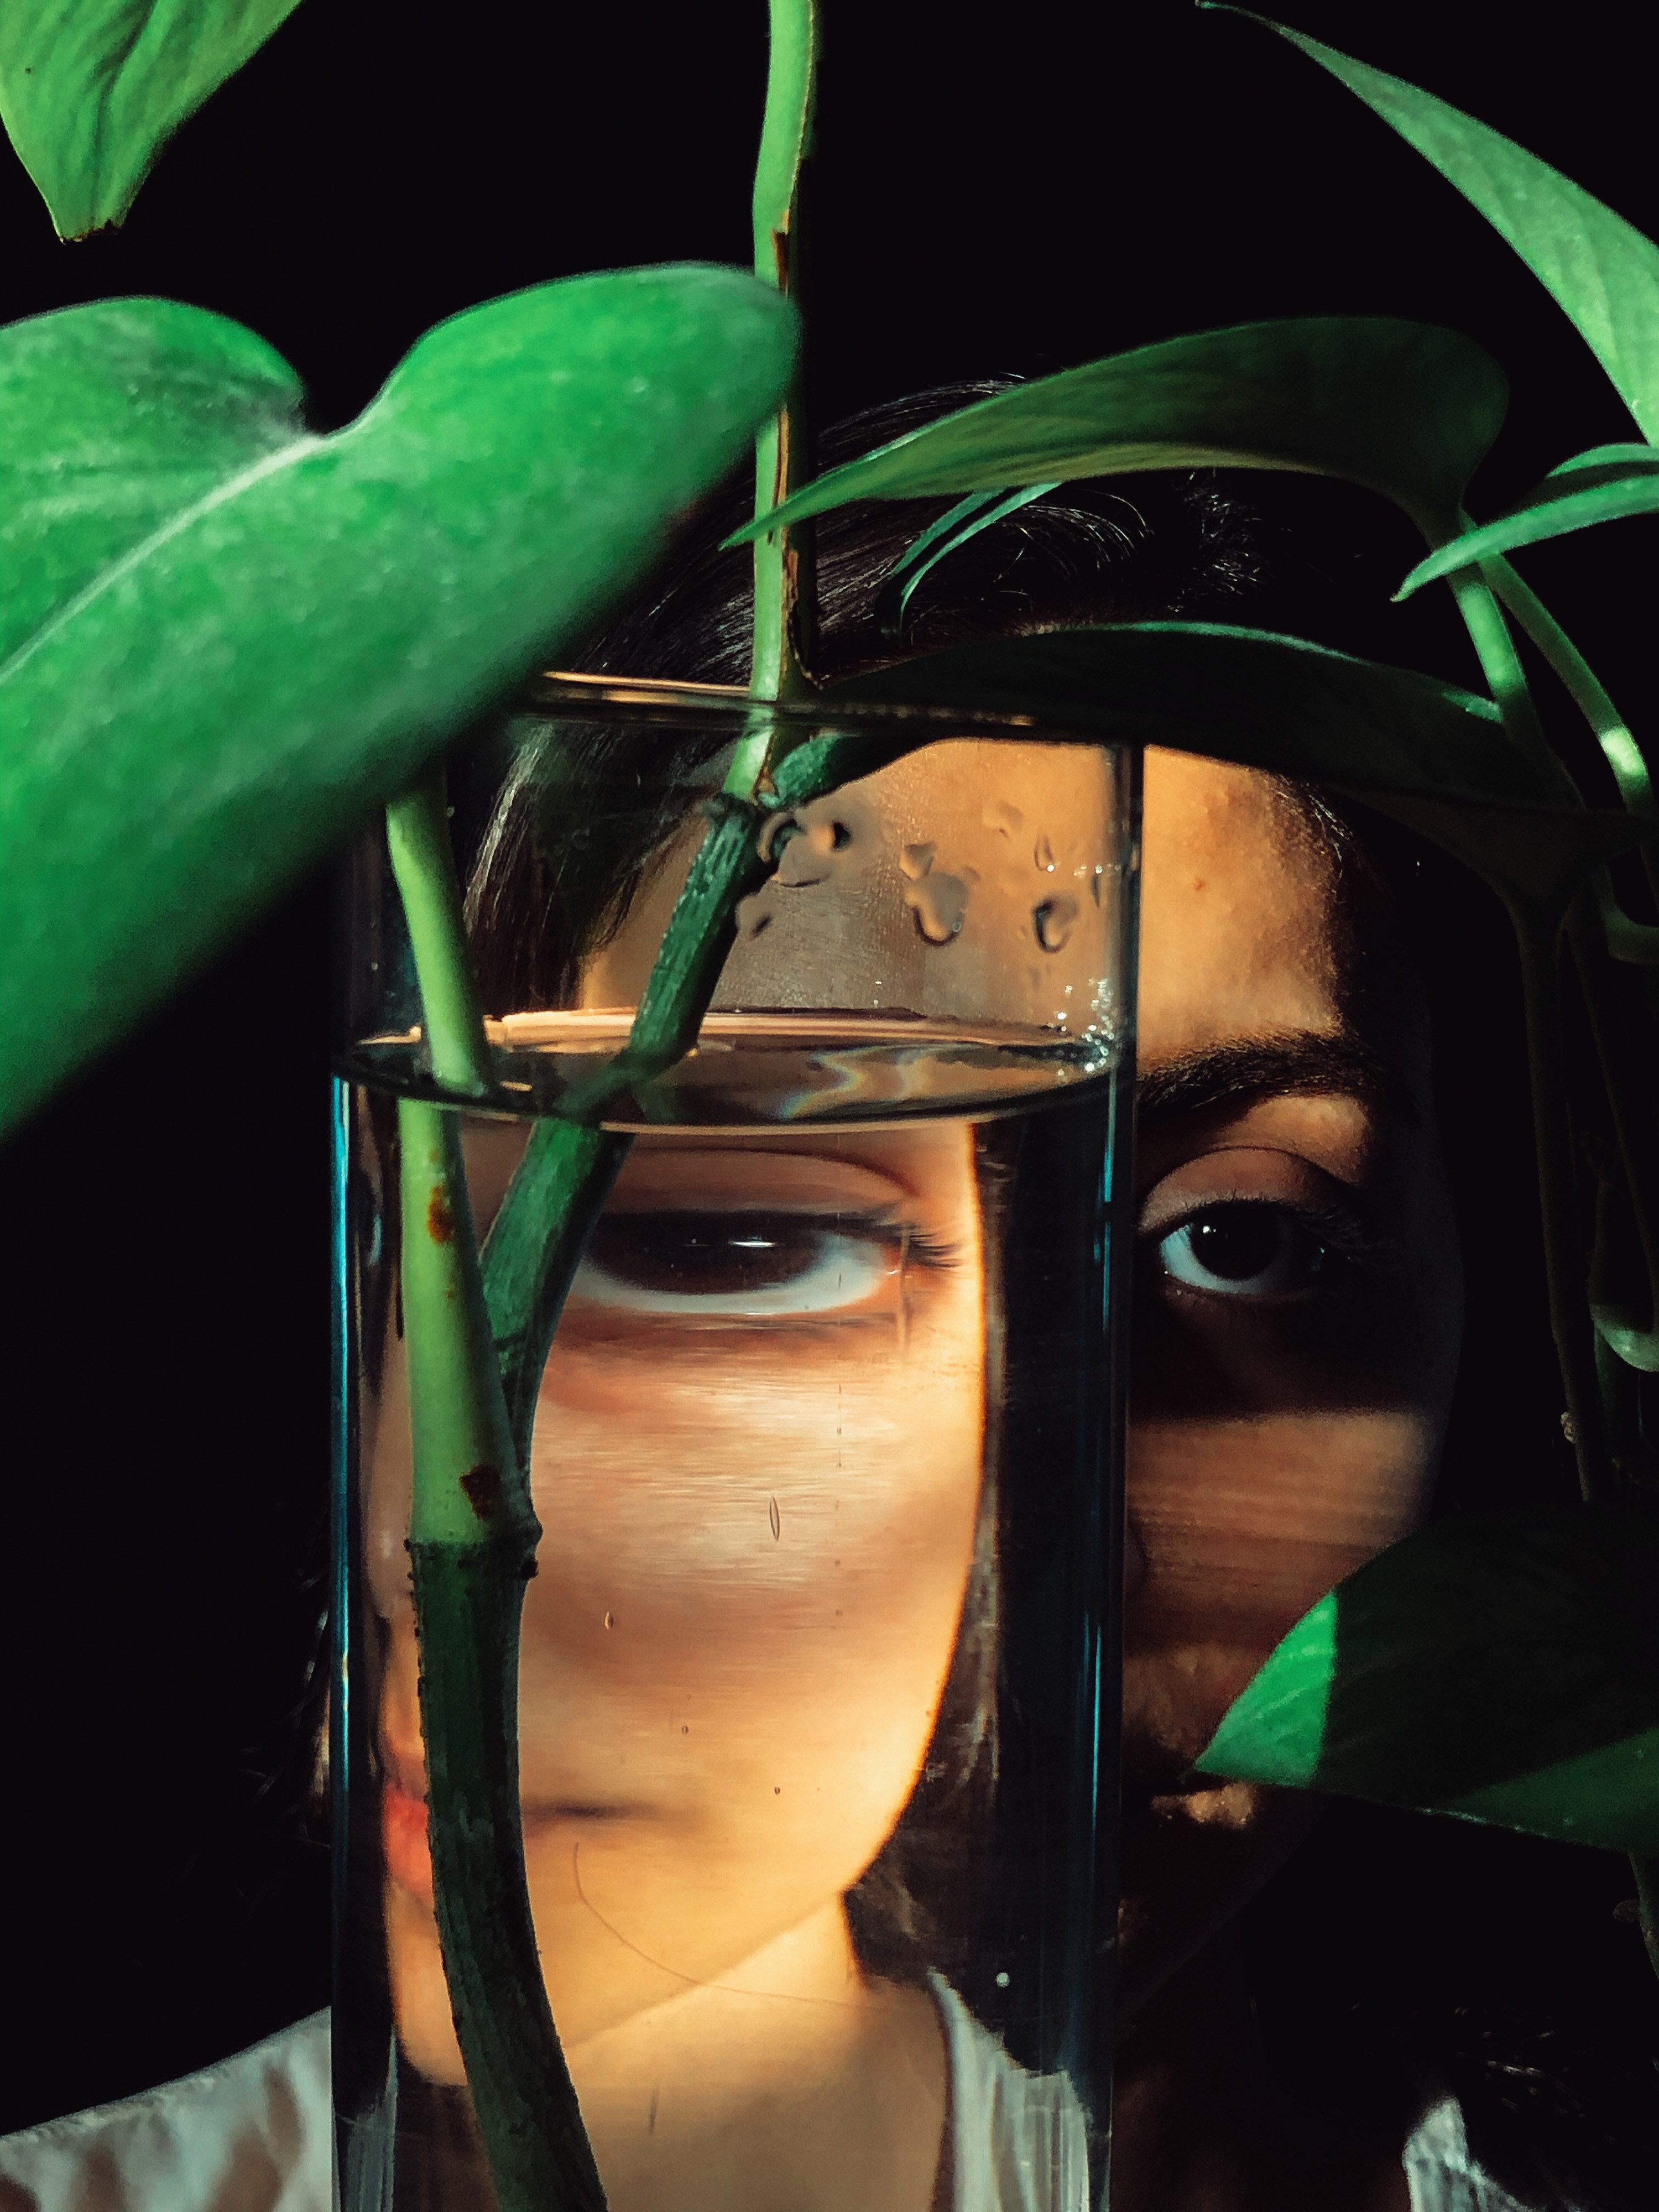 A face is seen through a vase with green leaves